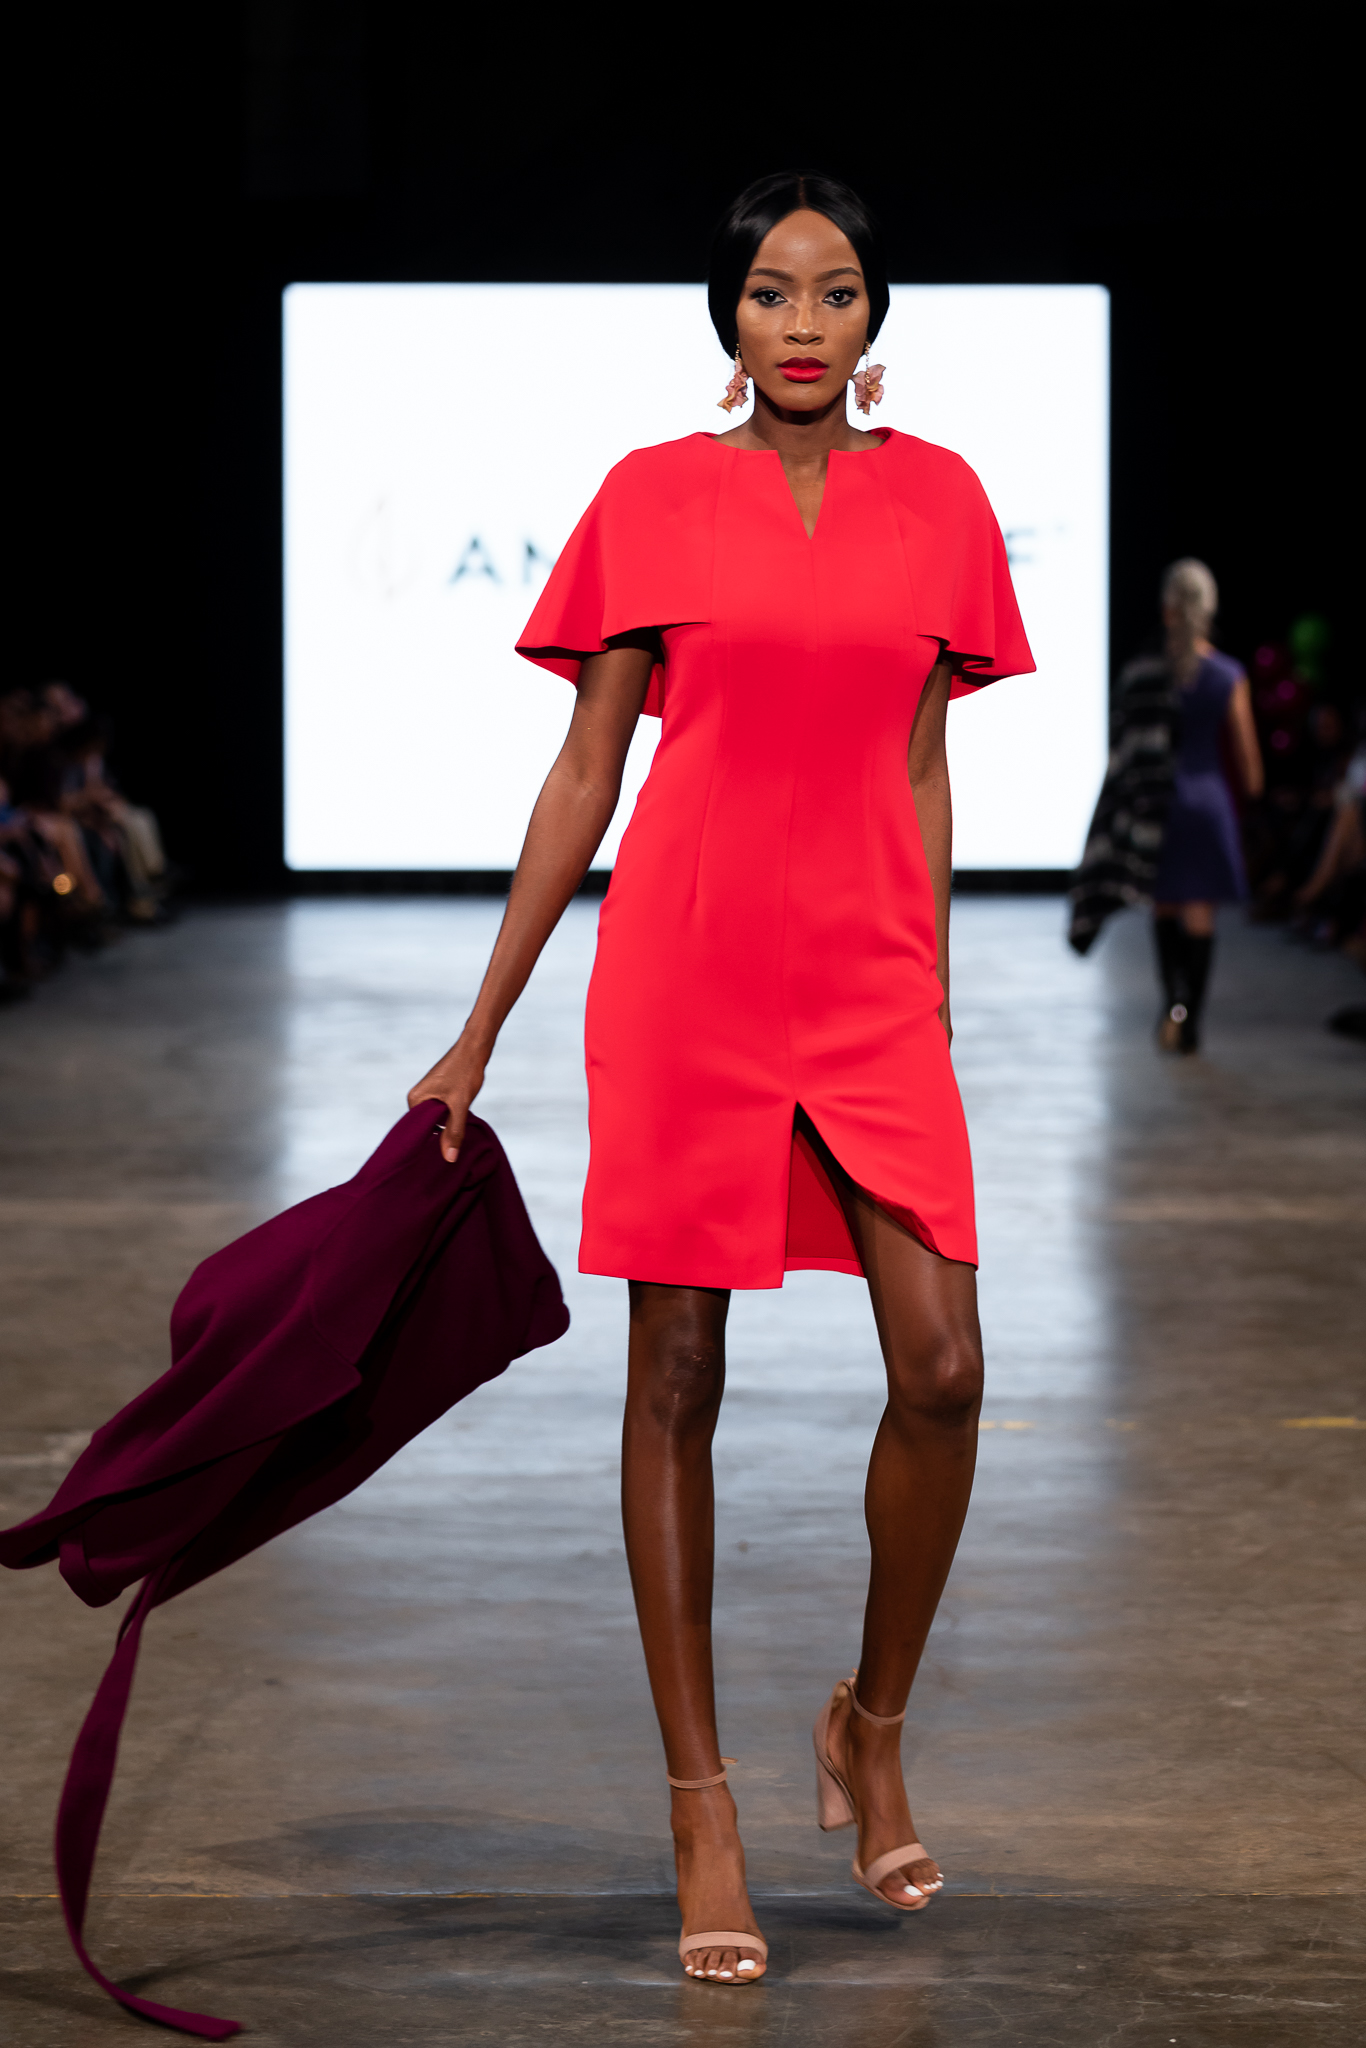 The 3 Texas Based Fashion Designers You Should Know About Venti Fashion